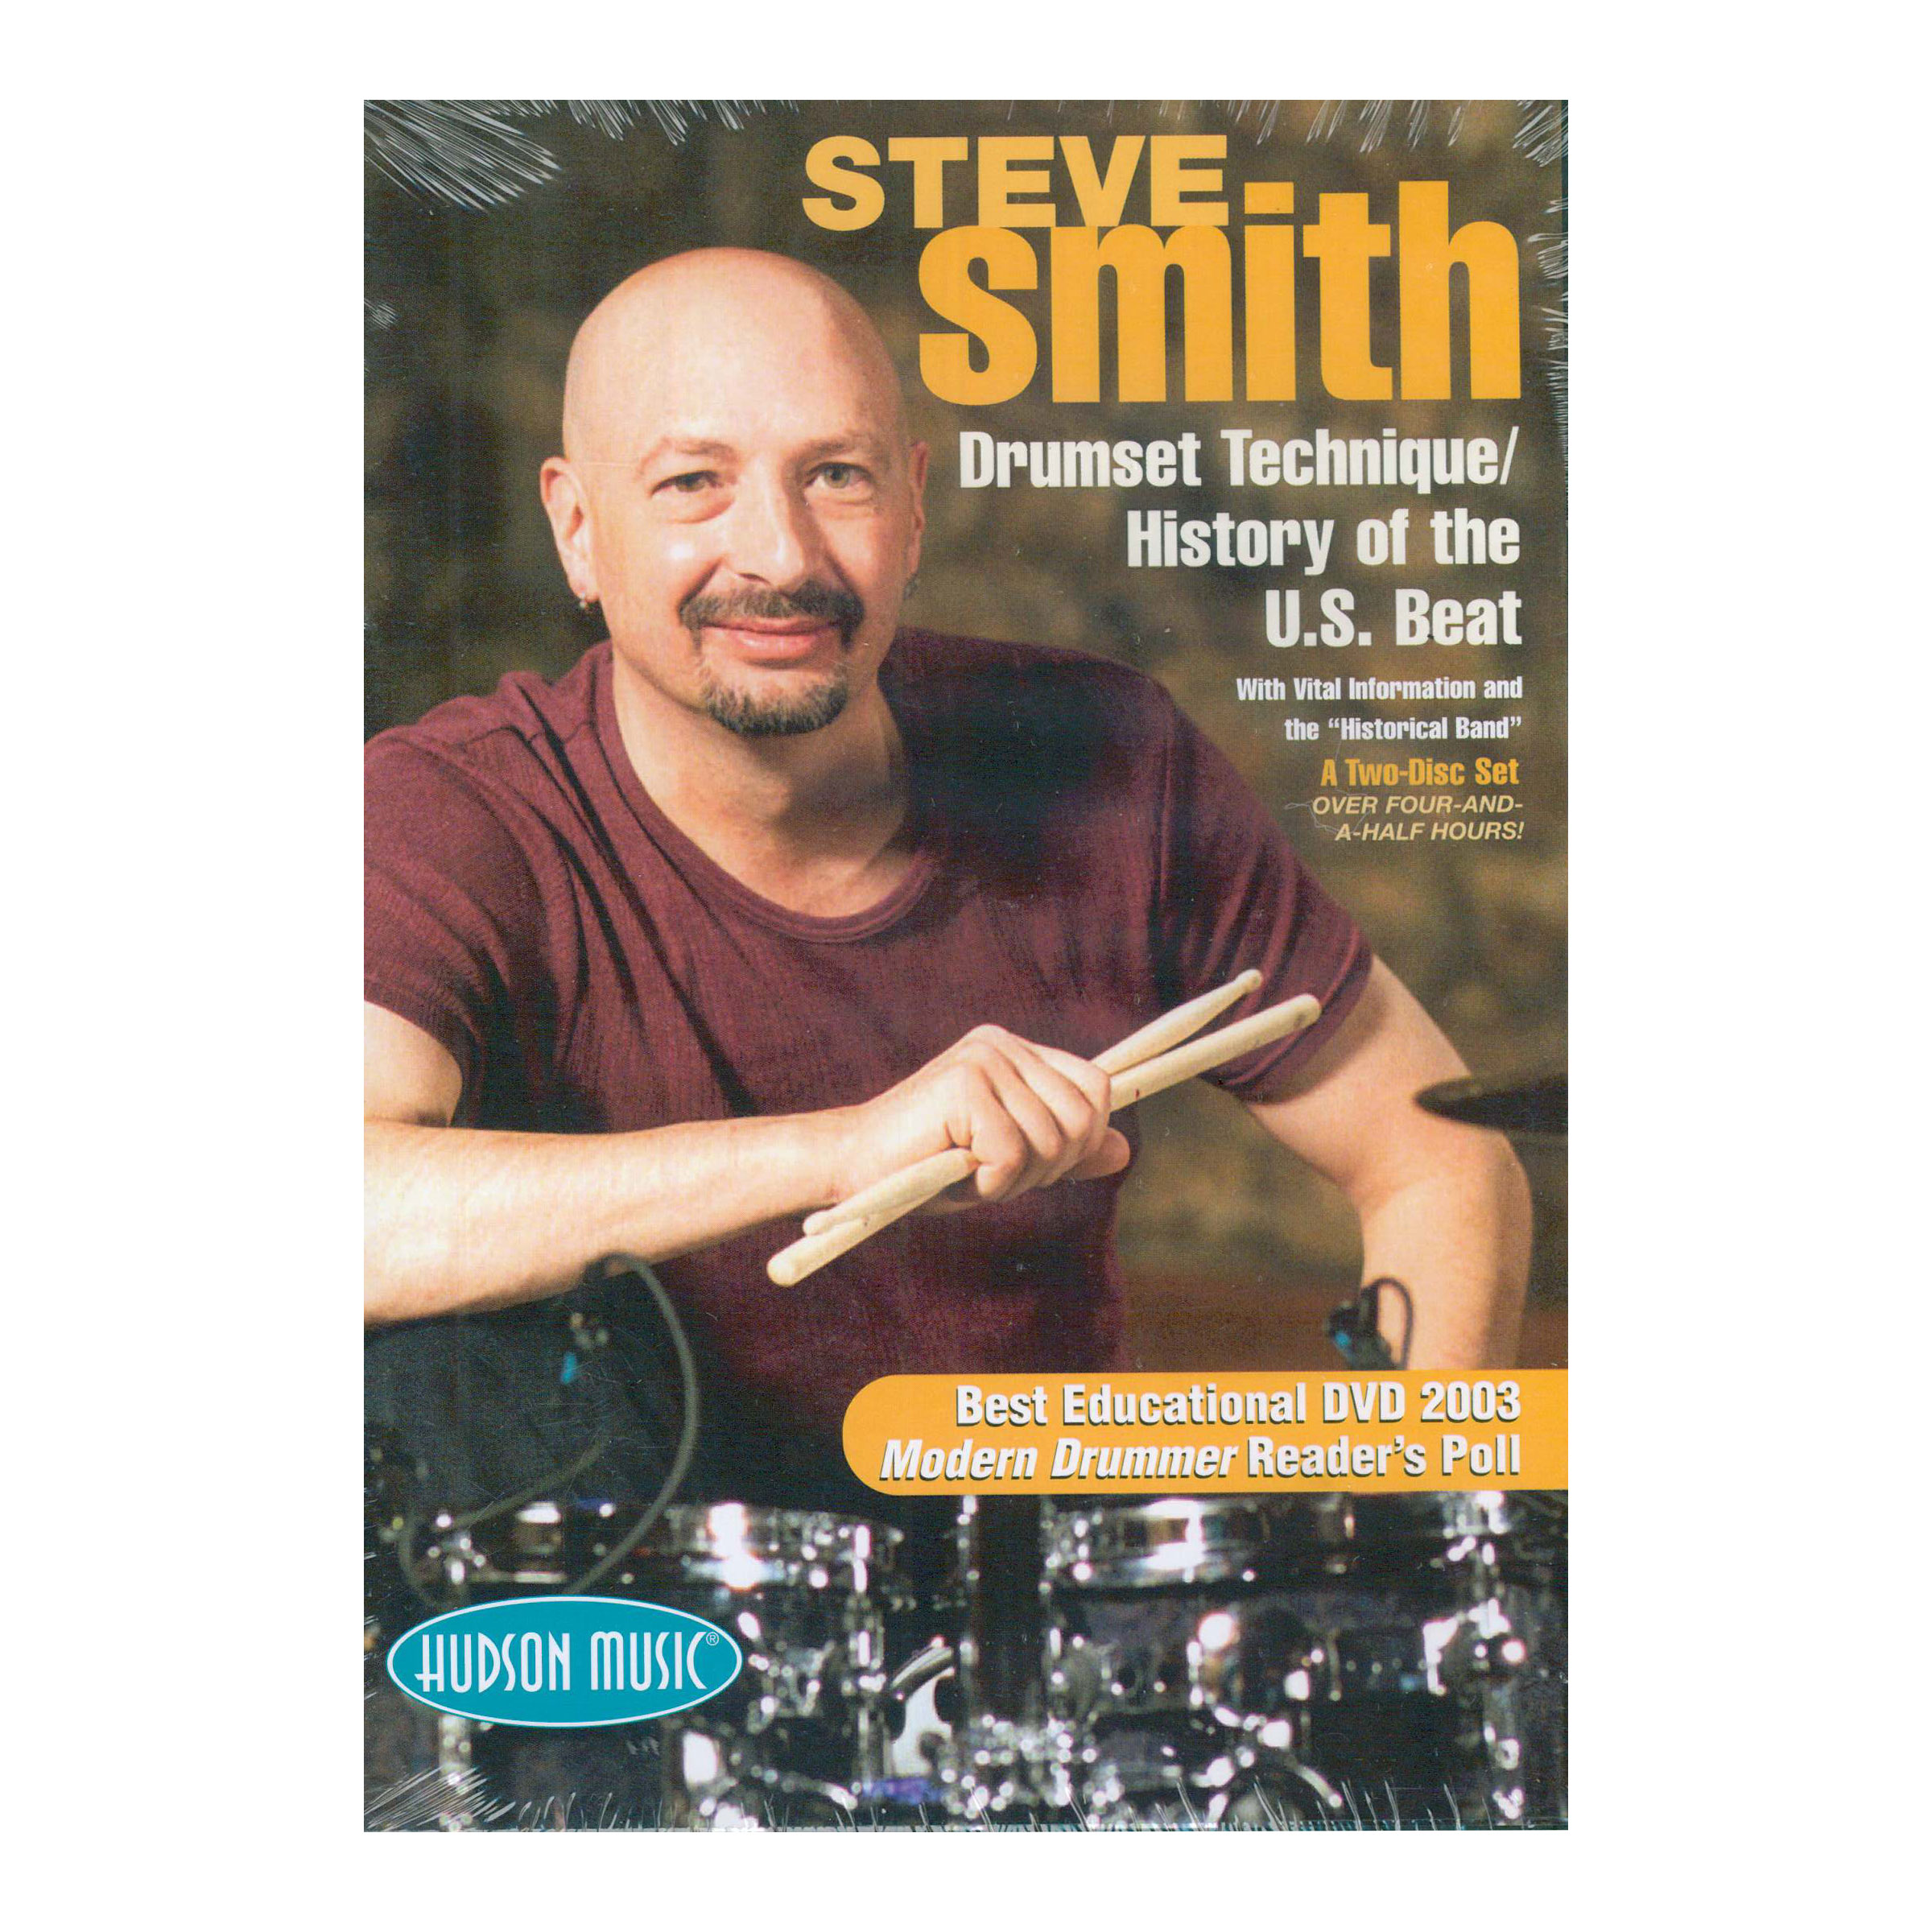 Drum Set Technique/History of US Beats DVD - Steve Smith